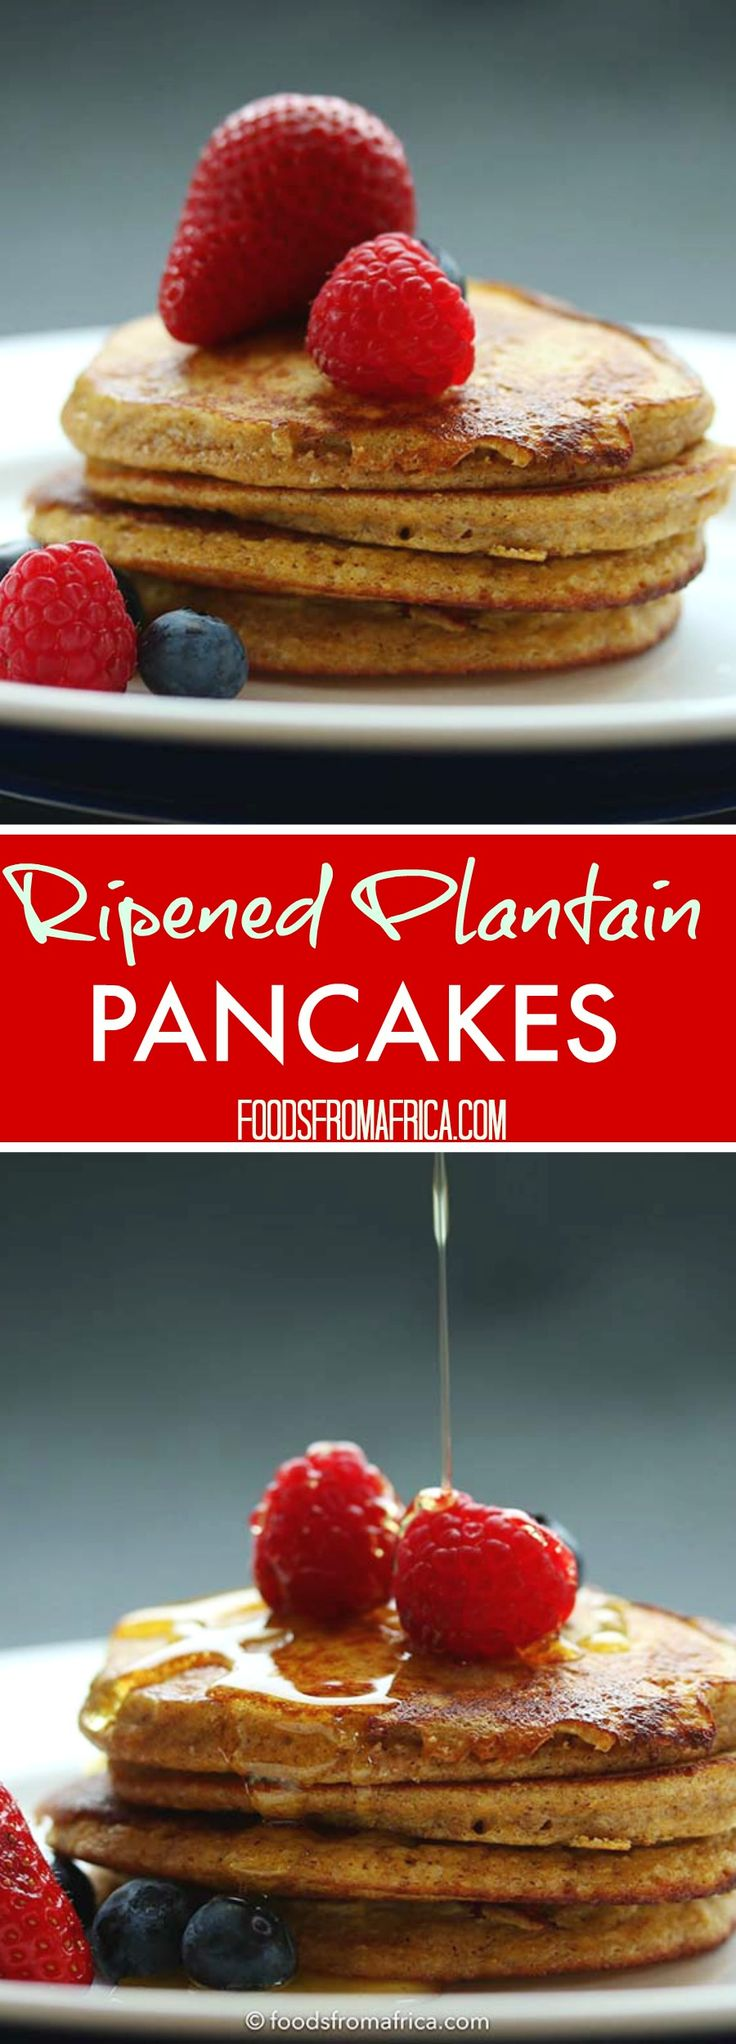 Ripened Plantain Pancakes. Easy, Healthy and Delicious Breakfast Recipe. Afro-fusion food blog | African recipes | African food blog.